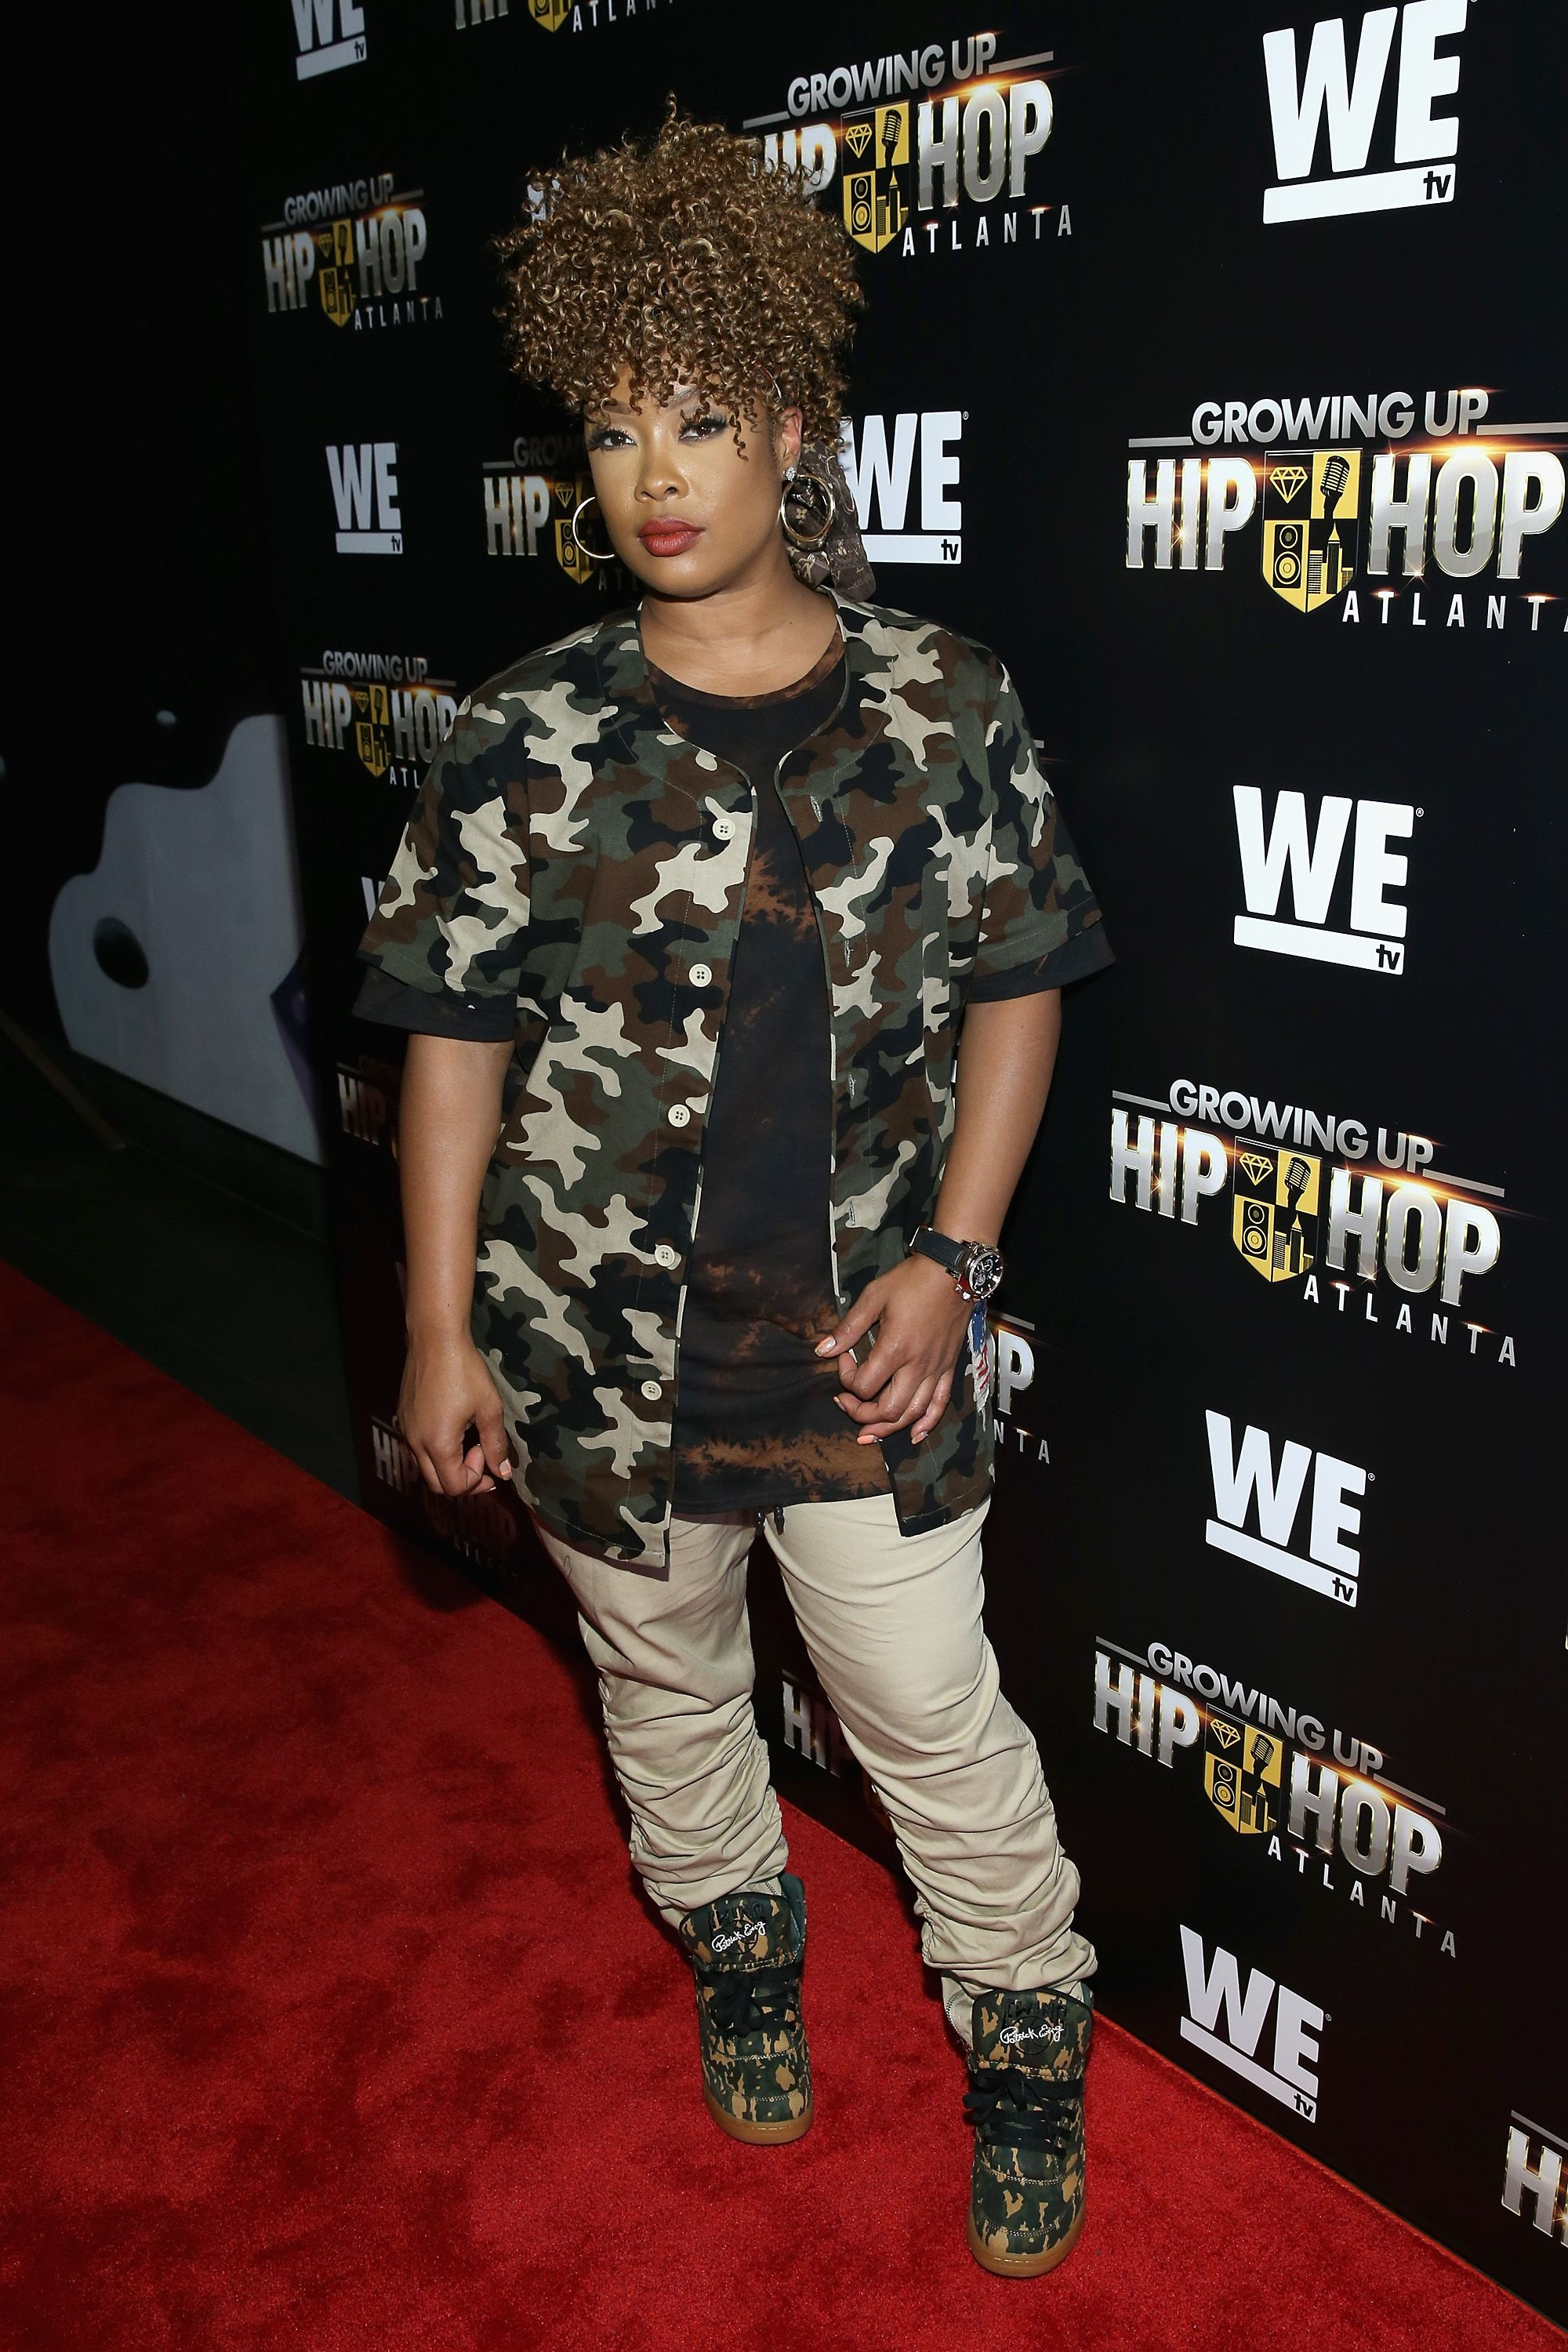 Da Brat attends the WE tv's Growing Up Hip Hop Atlanta premiere screening event on May 16, 2017 in New York City. | Source: Getty Images